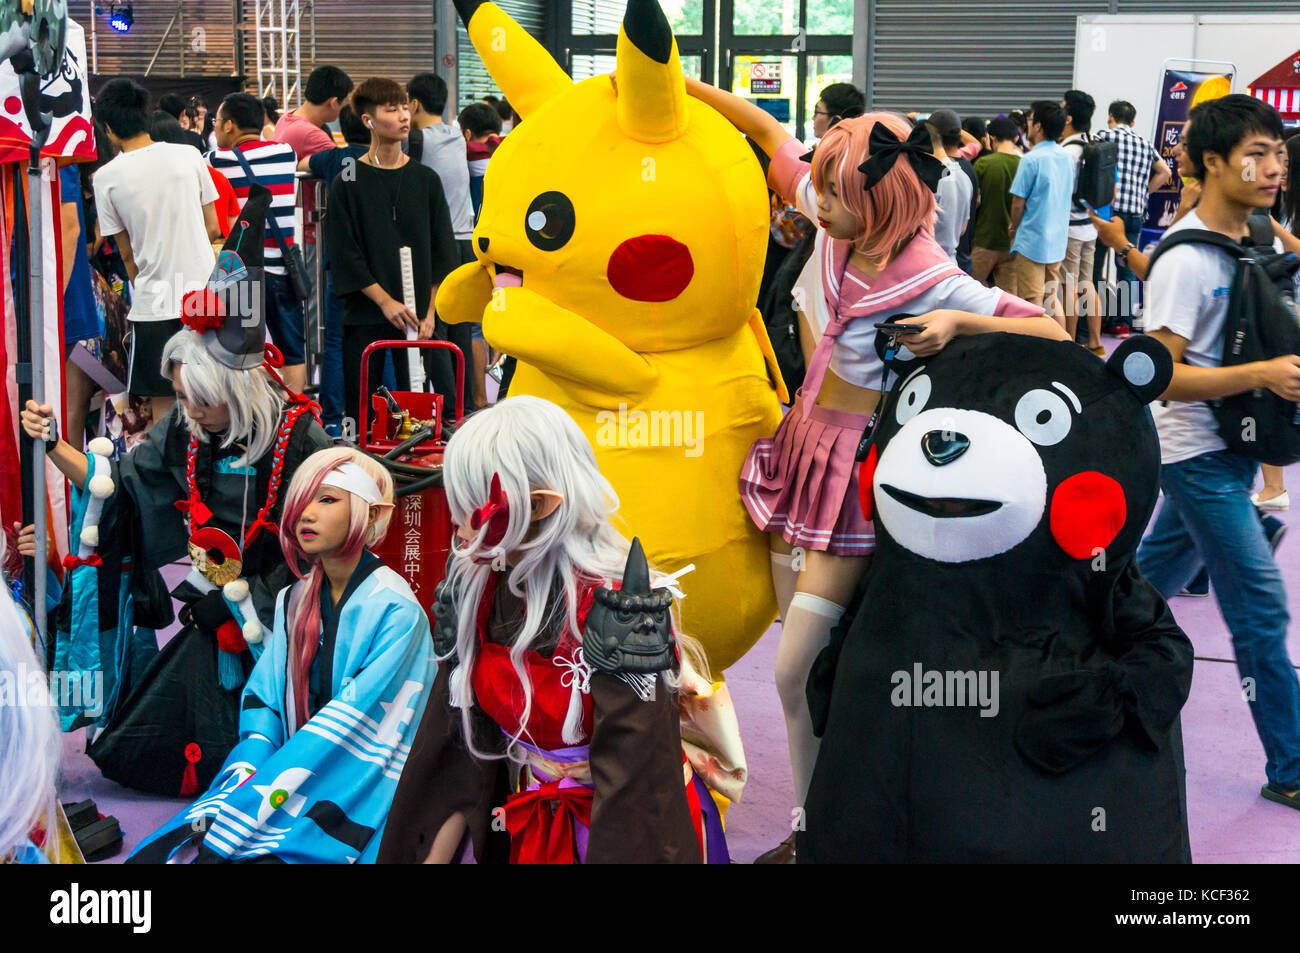 Pikachu And Kumamon Mascots With Japanese Anime Characters At 2017 Shenzhen Game Fair China Comic Con